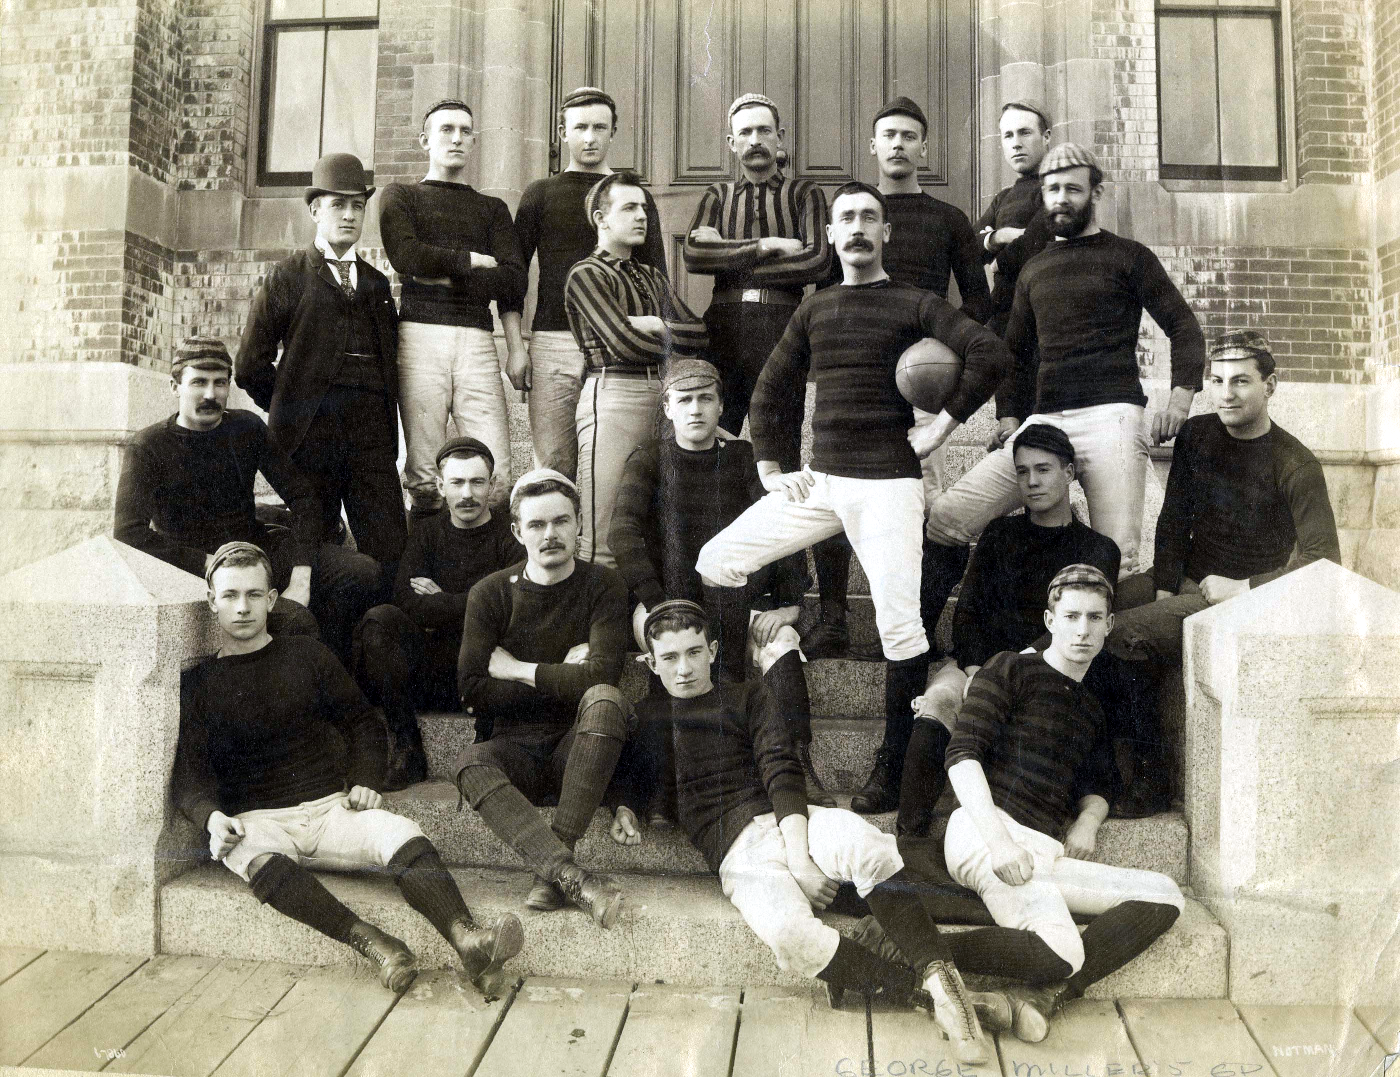 The Boys of Summer:George Miller's Football Crew from theDalhousie Law School Graduating Class of 1895.